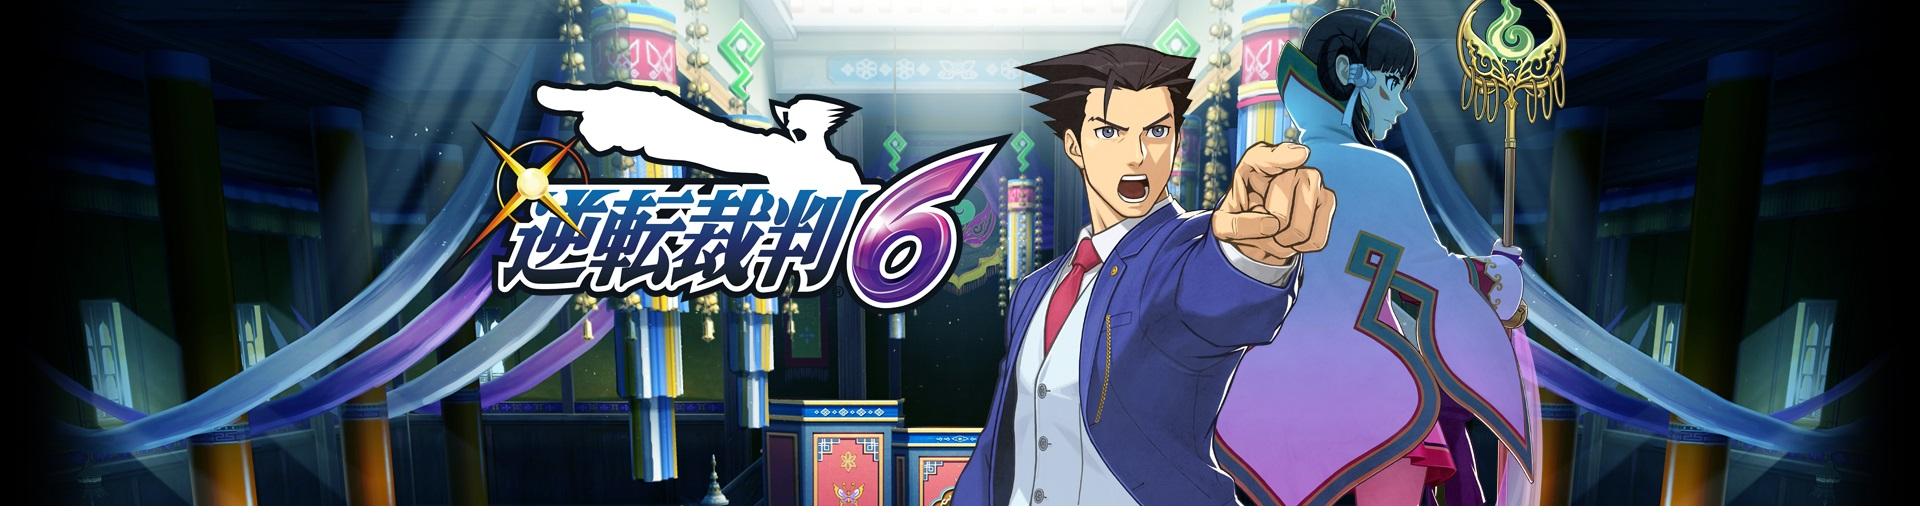 tgs 2015 Ace Attorney 6